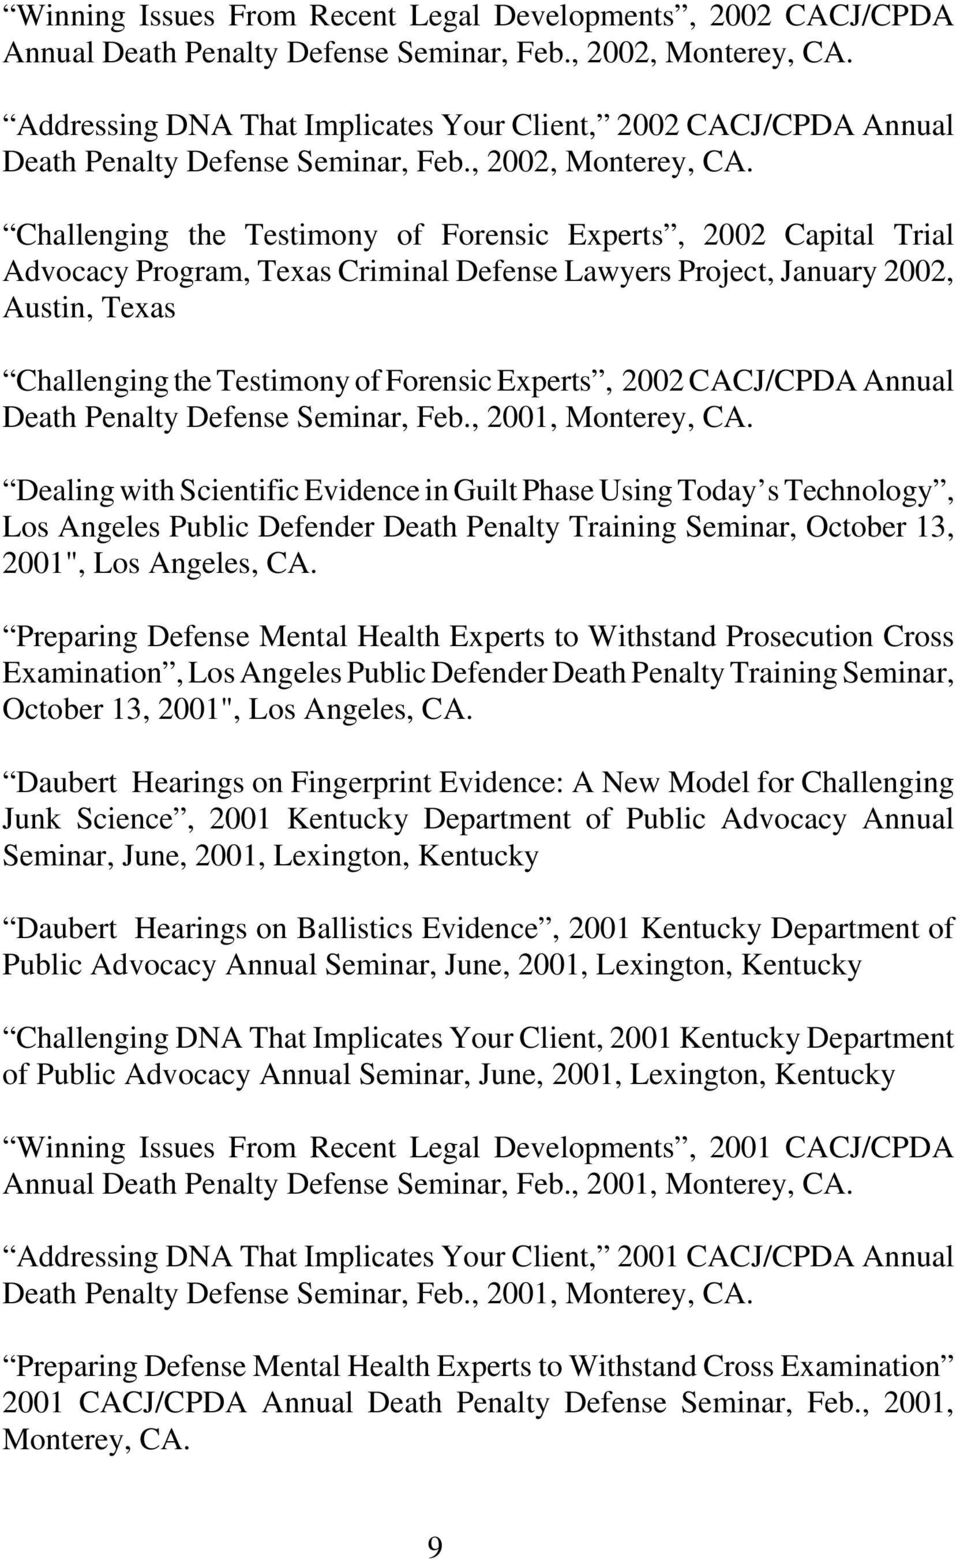 Challenging the Testimony of Forensic Experts, 2002 Capital Trial Advocacy Program, Texas Criminal Defense Lawyers Project, January 2002, Austin, Texas Challenging the Testimony of Forensic Experts,